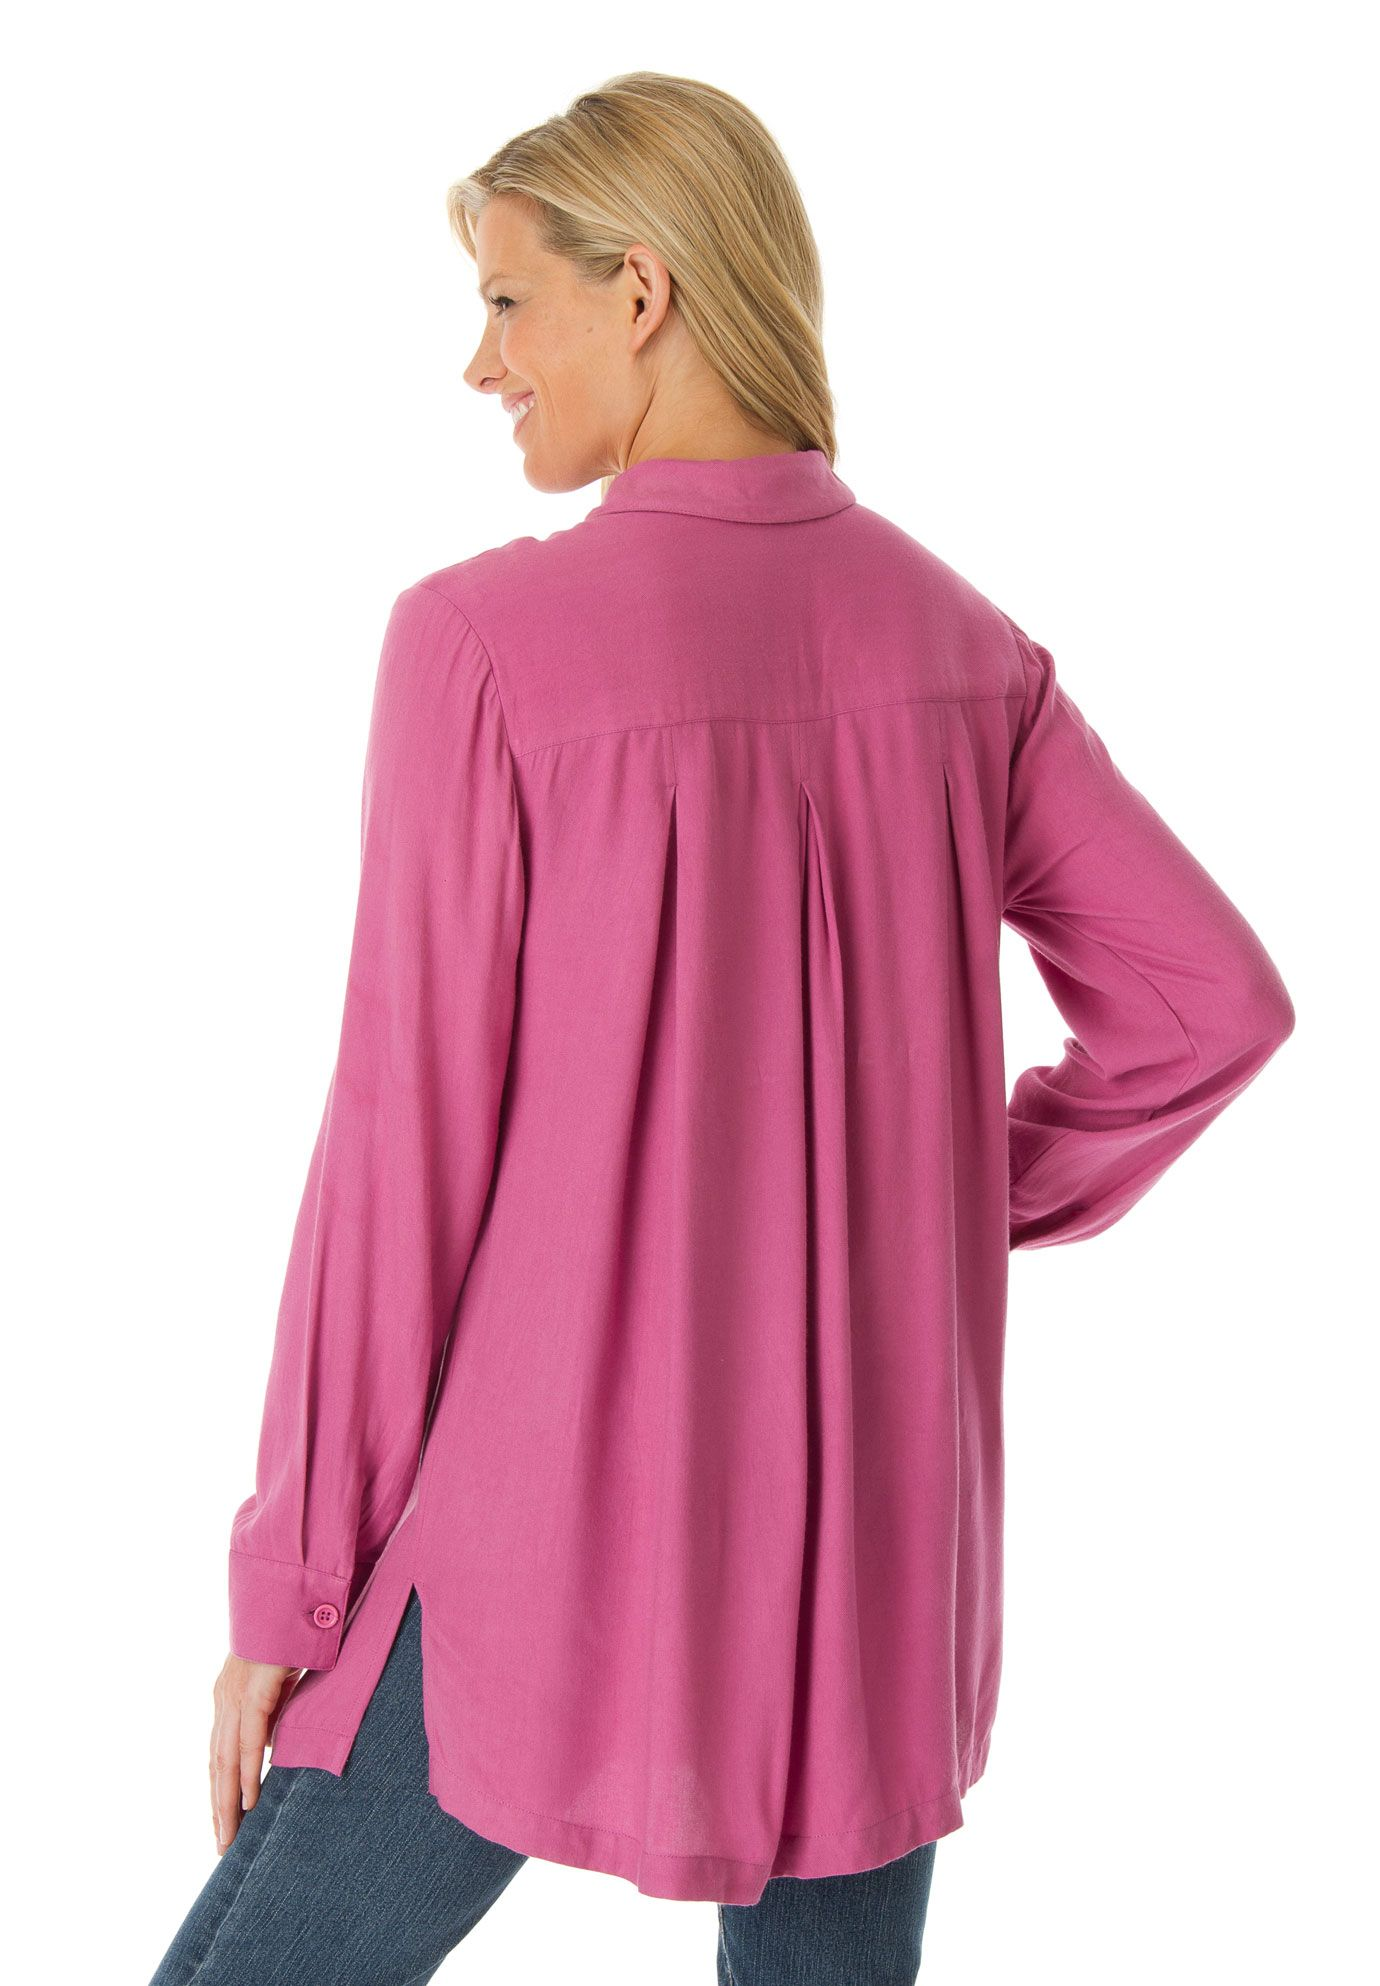 bb0732401 Tunic shirt with long sleeves, pleated back yoke for fullness | Plus Size  New Arrivals | Woman Within